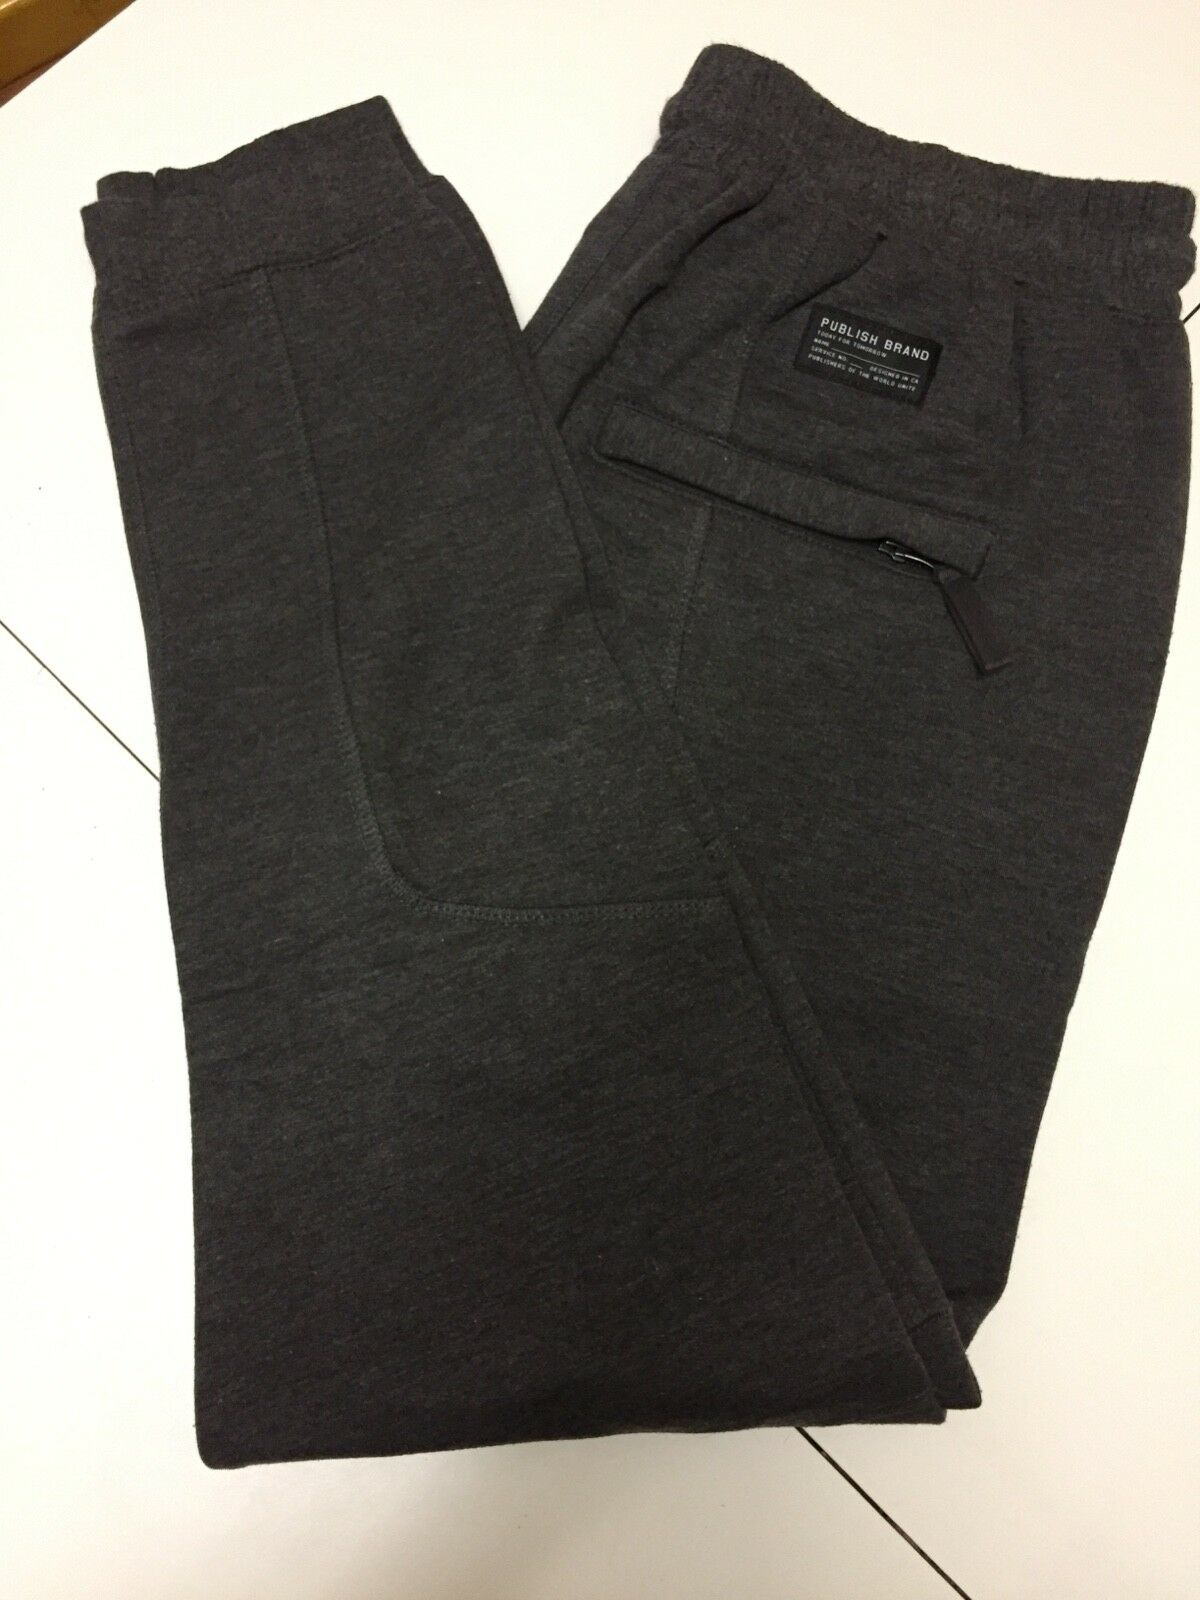 Men's Publish Joggers grey charcoal 32 fleece lined sweatpants tight like new